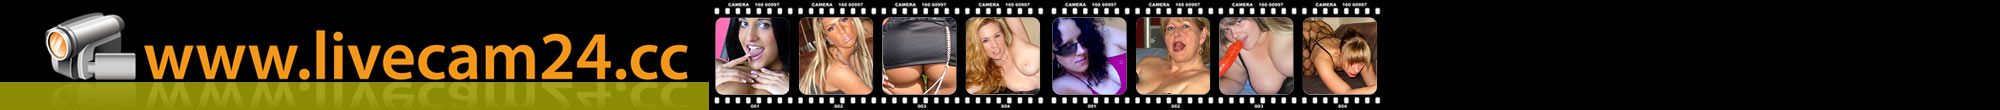 DevoteCarla, 42 Jahre, BH: 90 B - sex cam -  - Video Web Cams Live Sex Chat von heissen Girls